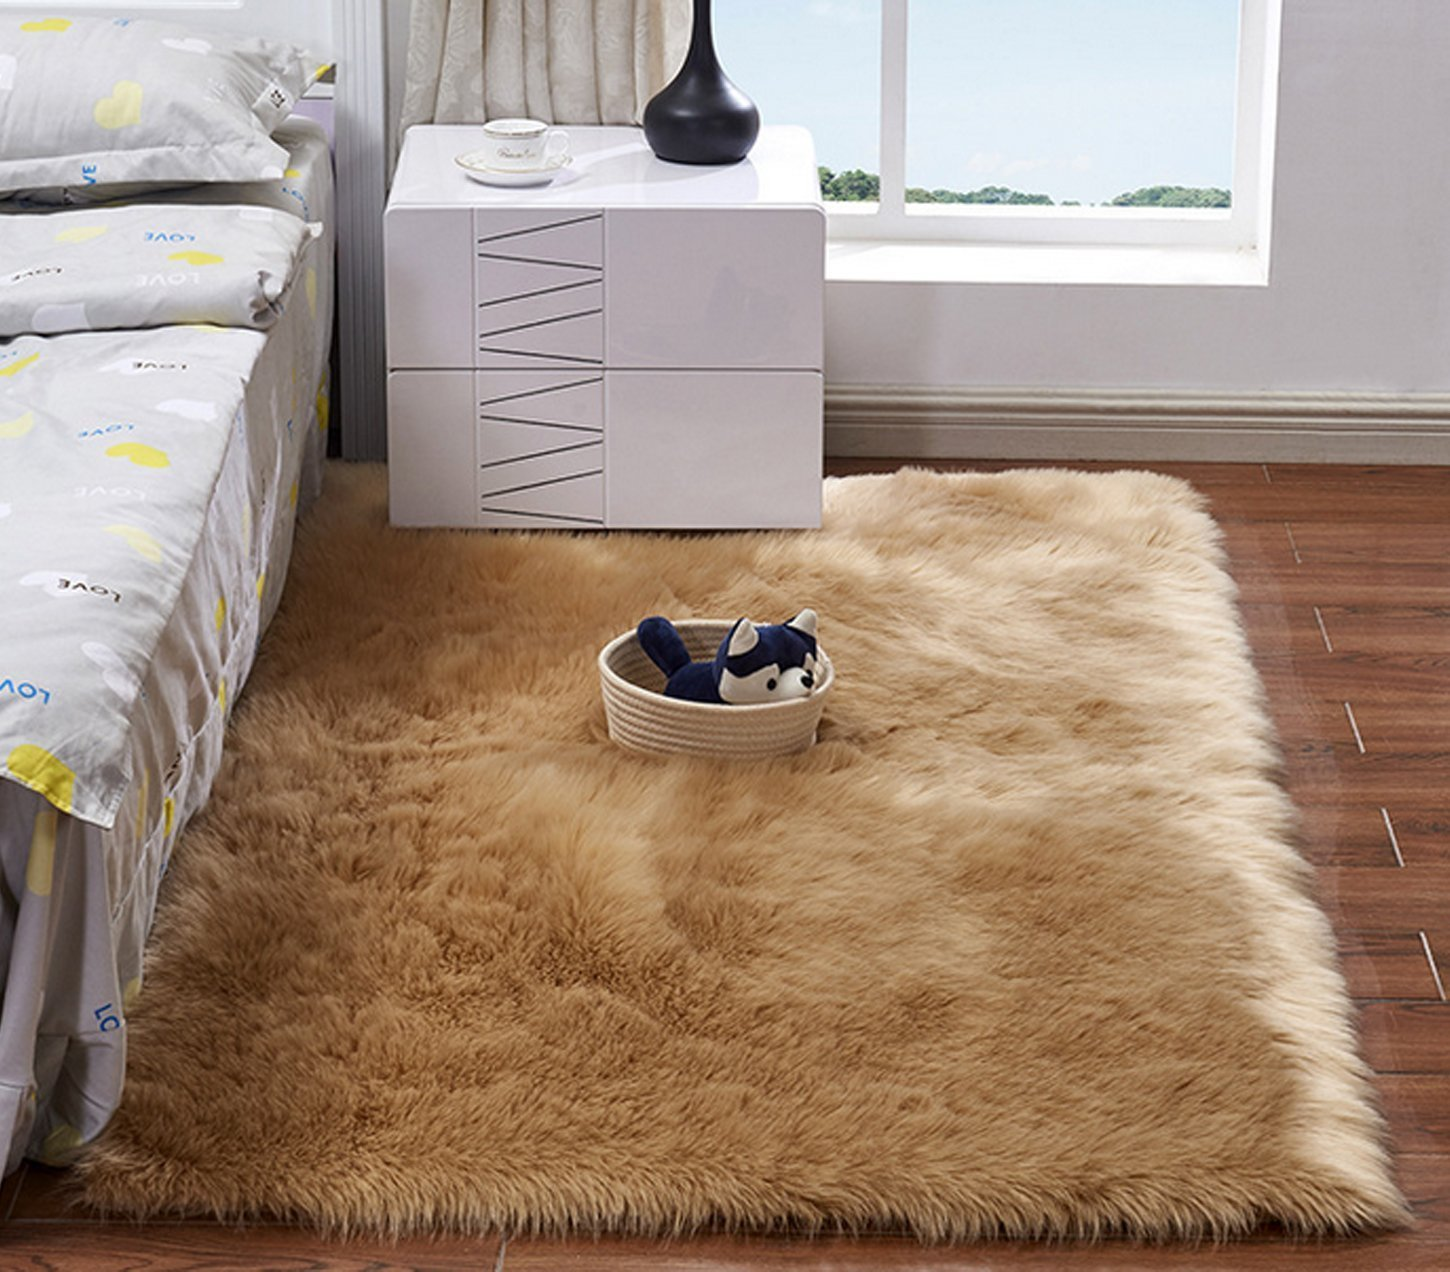 Soft Faux Sheepskin Area Rug Fluffy Shaggy Rugs Thick Chair Cover Seat Pad Plush Fur Floor Carpet Suede Back for Bedrooms Living Room Kids Rooms Decor Rectangle,Brown,5x8ft Large Rug